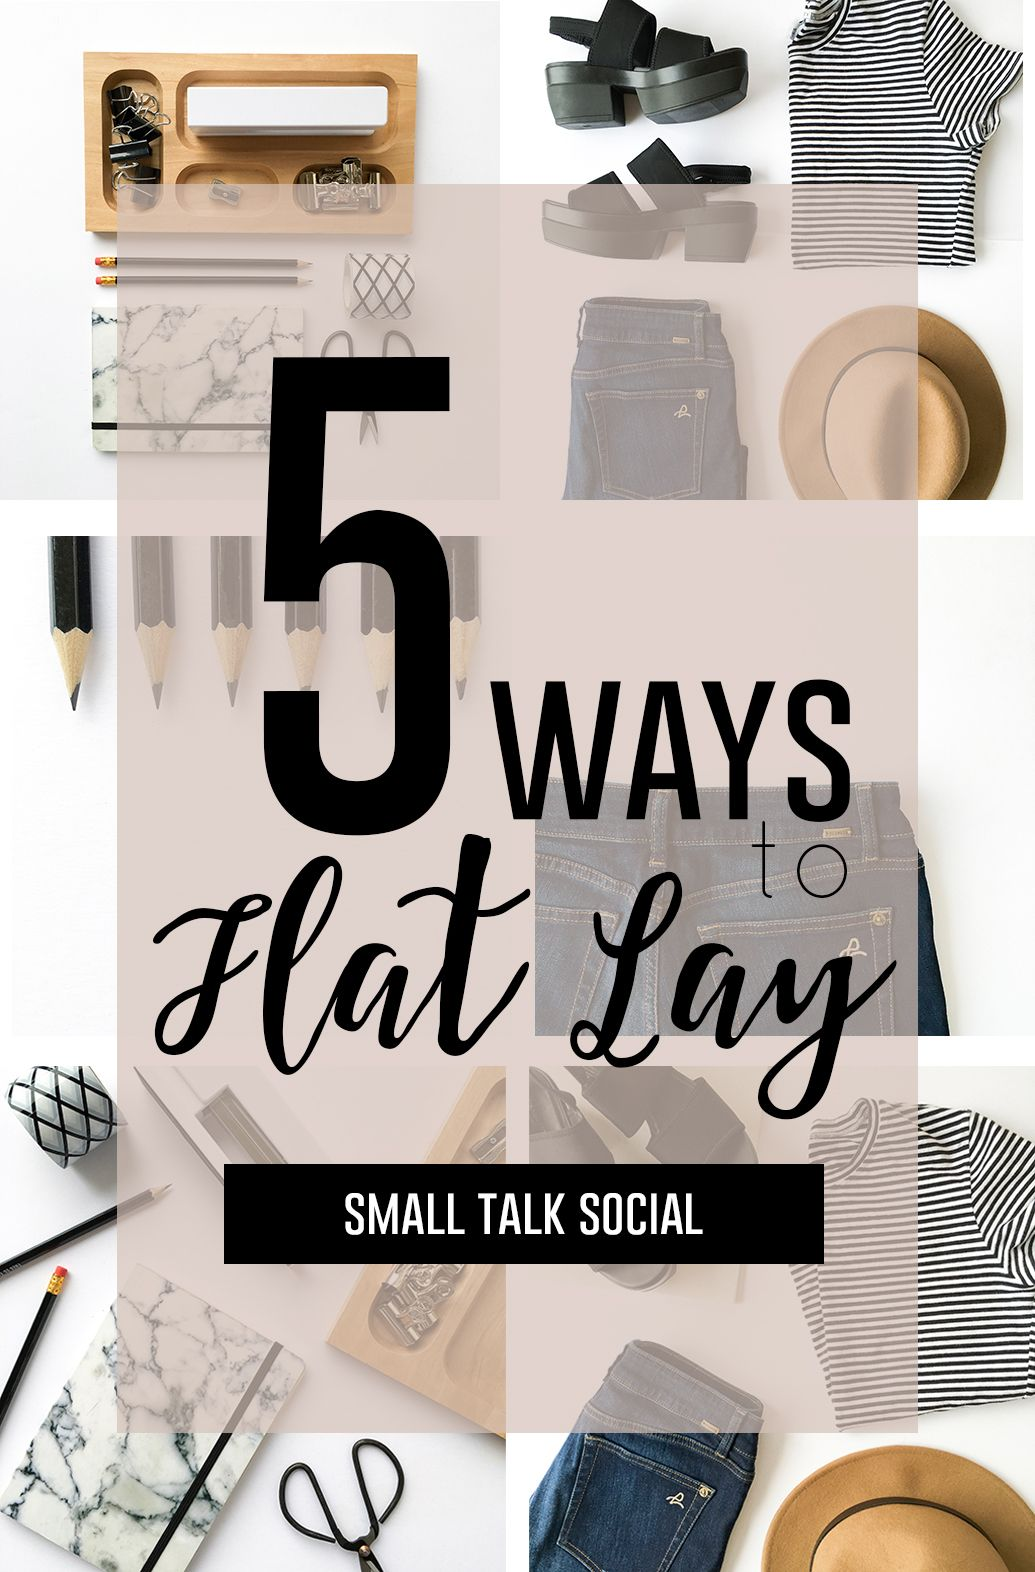 Styling Tips In Keeping With The Current Fashion Trends In: How To Style A Flat Lay: Instagram Skills That Pay The